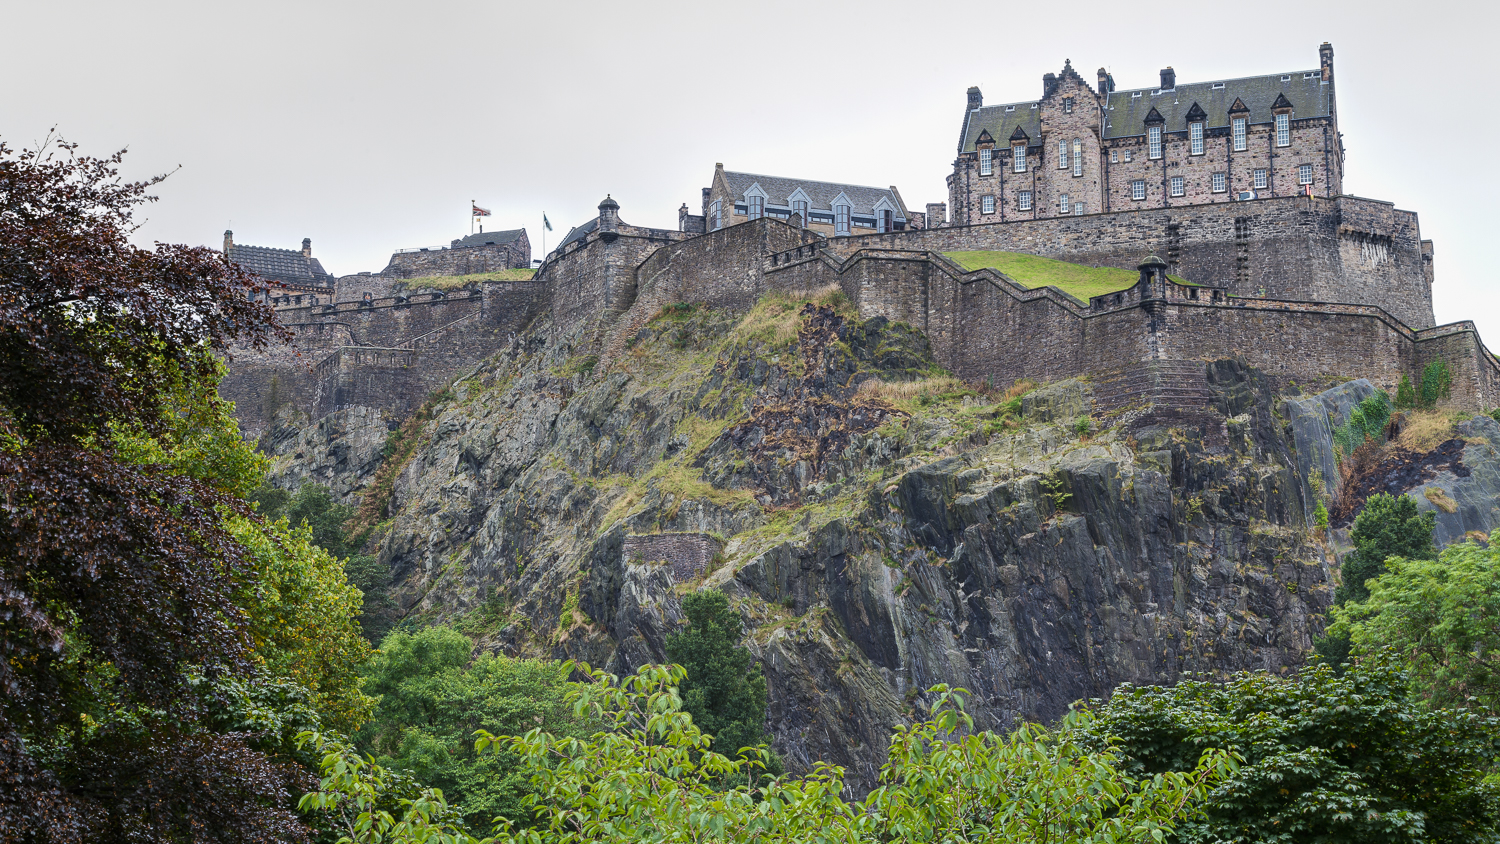 Edinburgh Castle is a historic fortress which dominates the skyline of the city from its position on the Castle Rock.